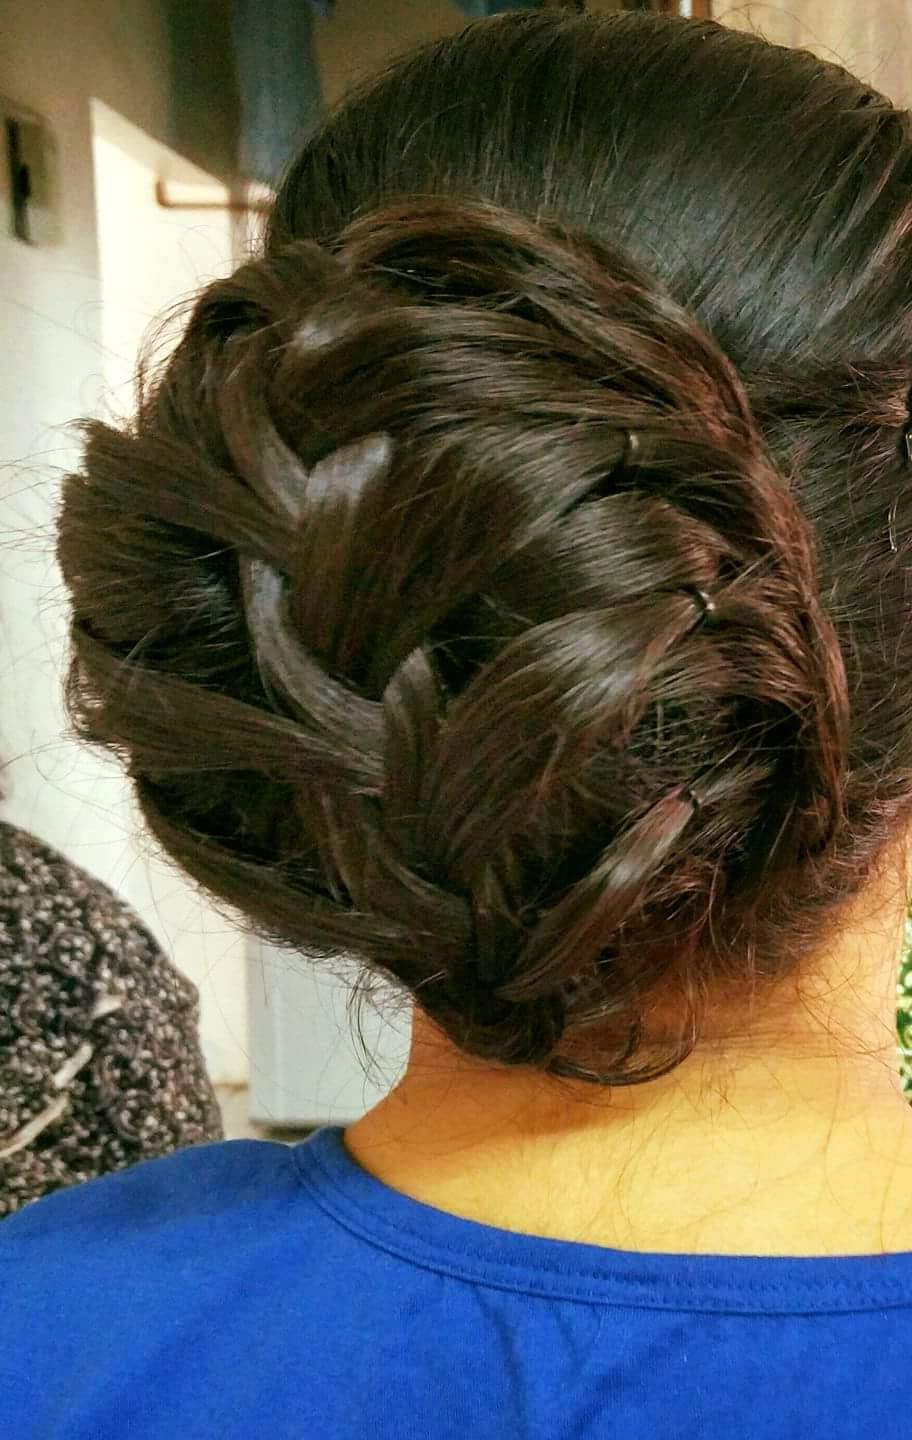 65 Super Stylish Braided Bun Hairstyle To Leave Behind Some Feminine In Recent Diagonal Braid And Loose Bun Hairstyles For Prom (View 4 of 20)